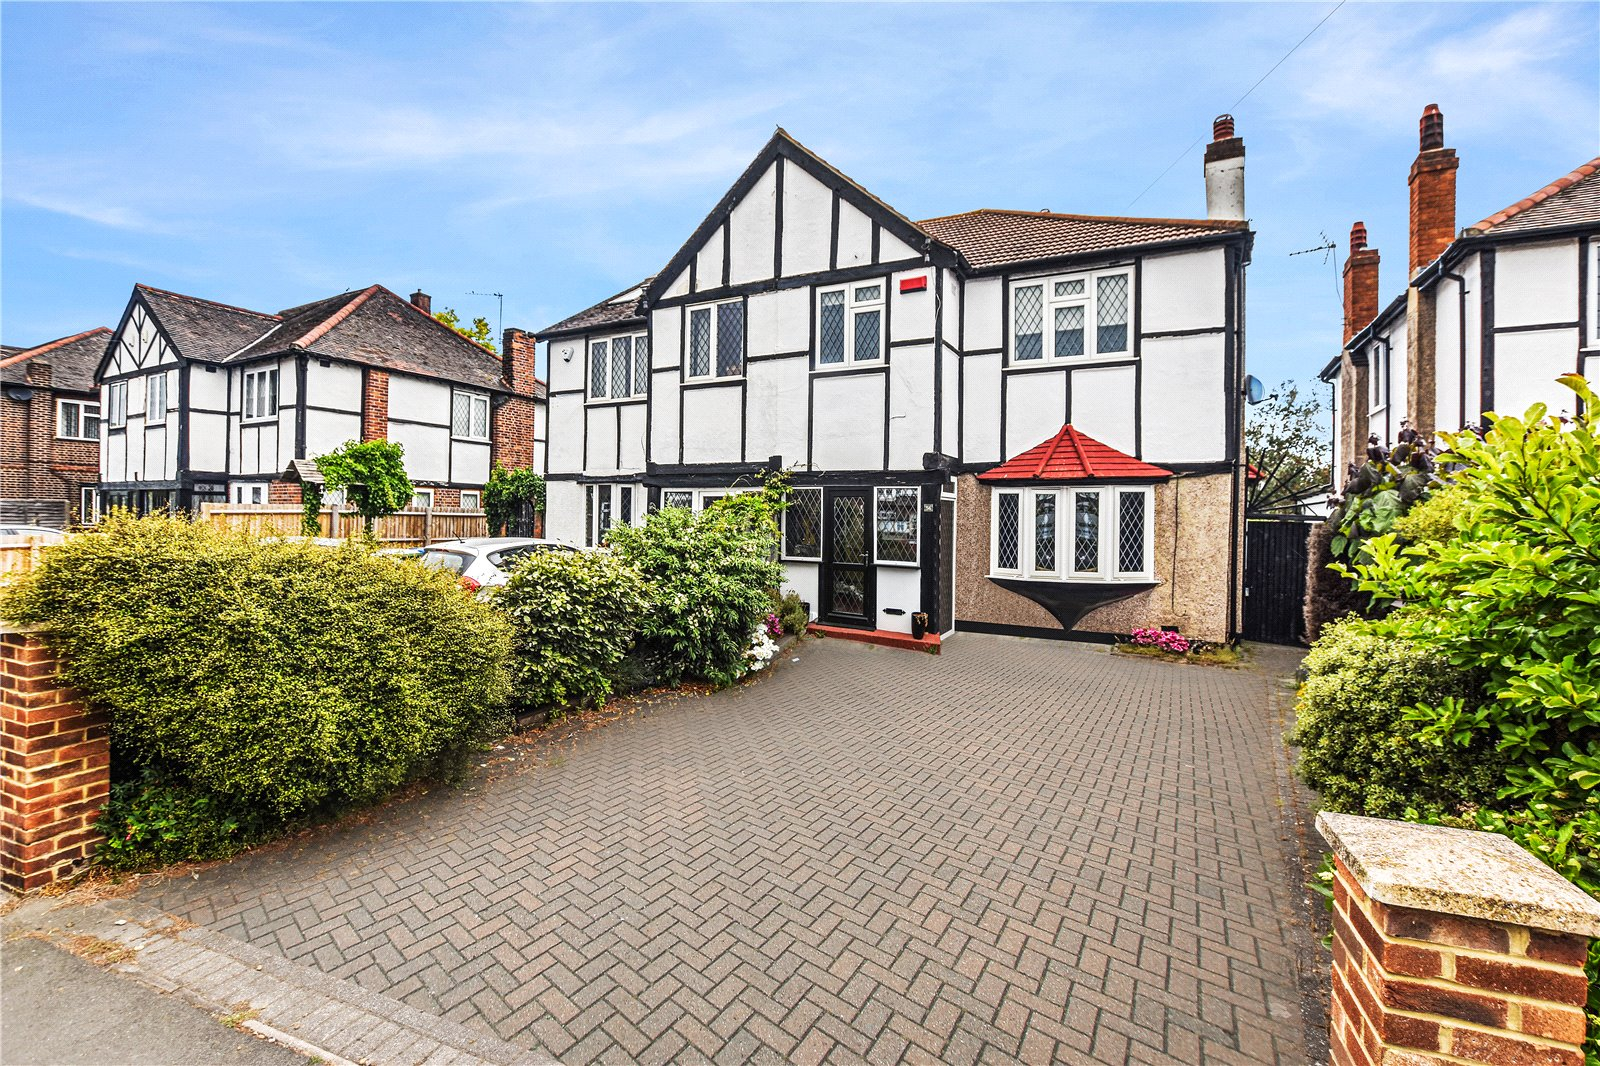 Blendon Road, Bexley, Kent, DA5